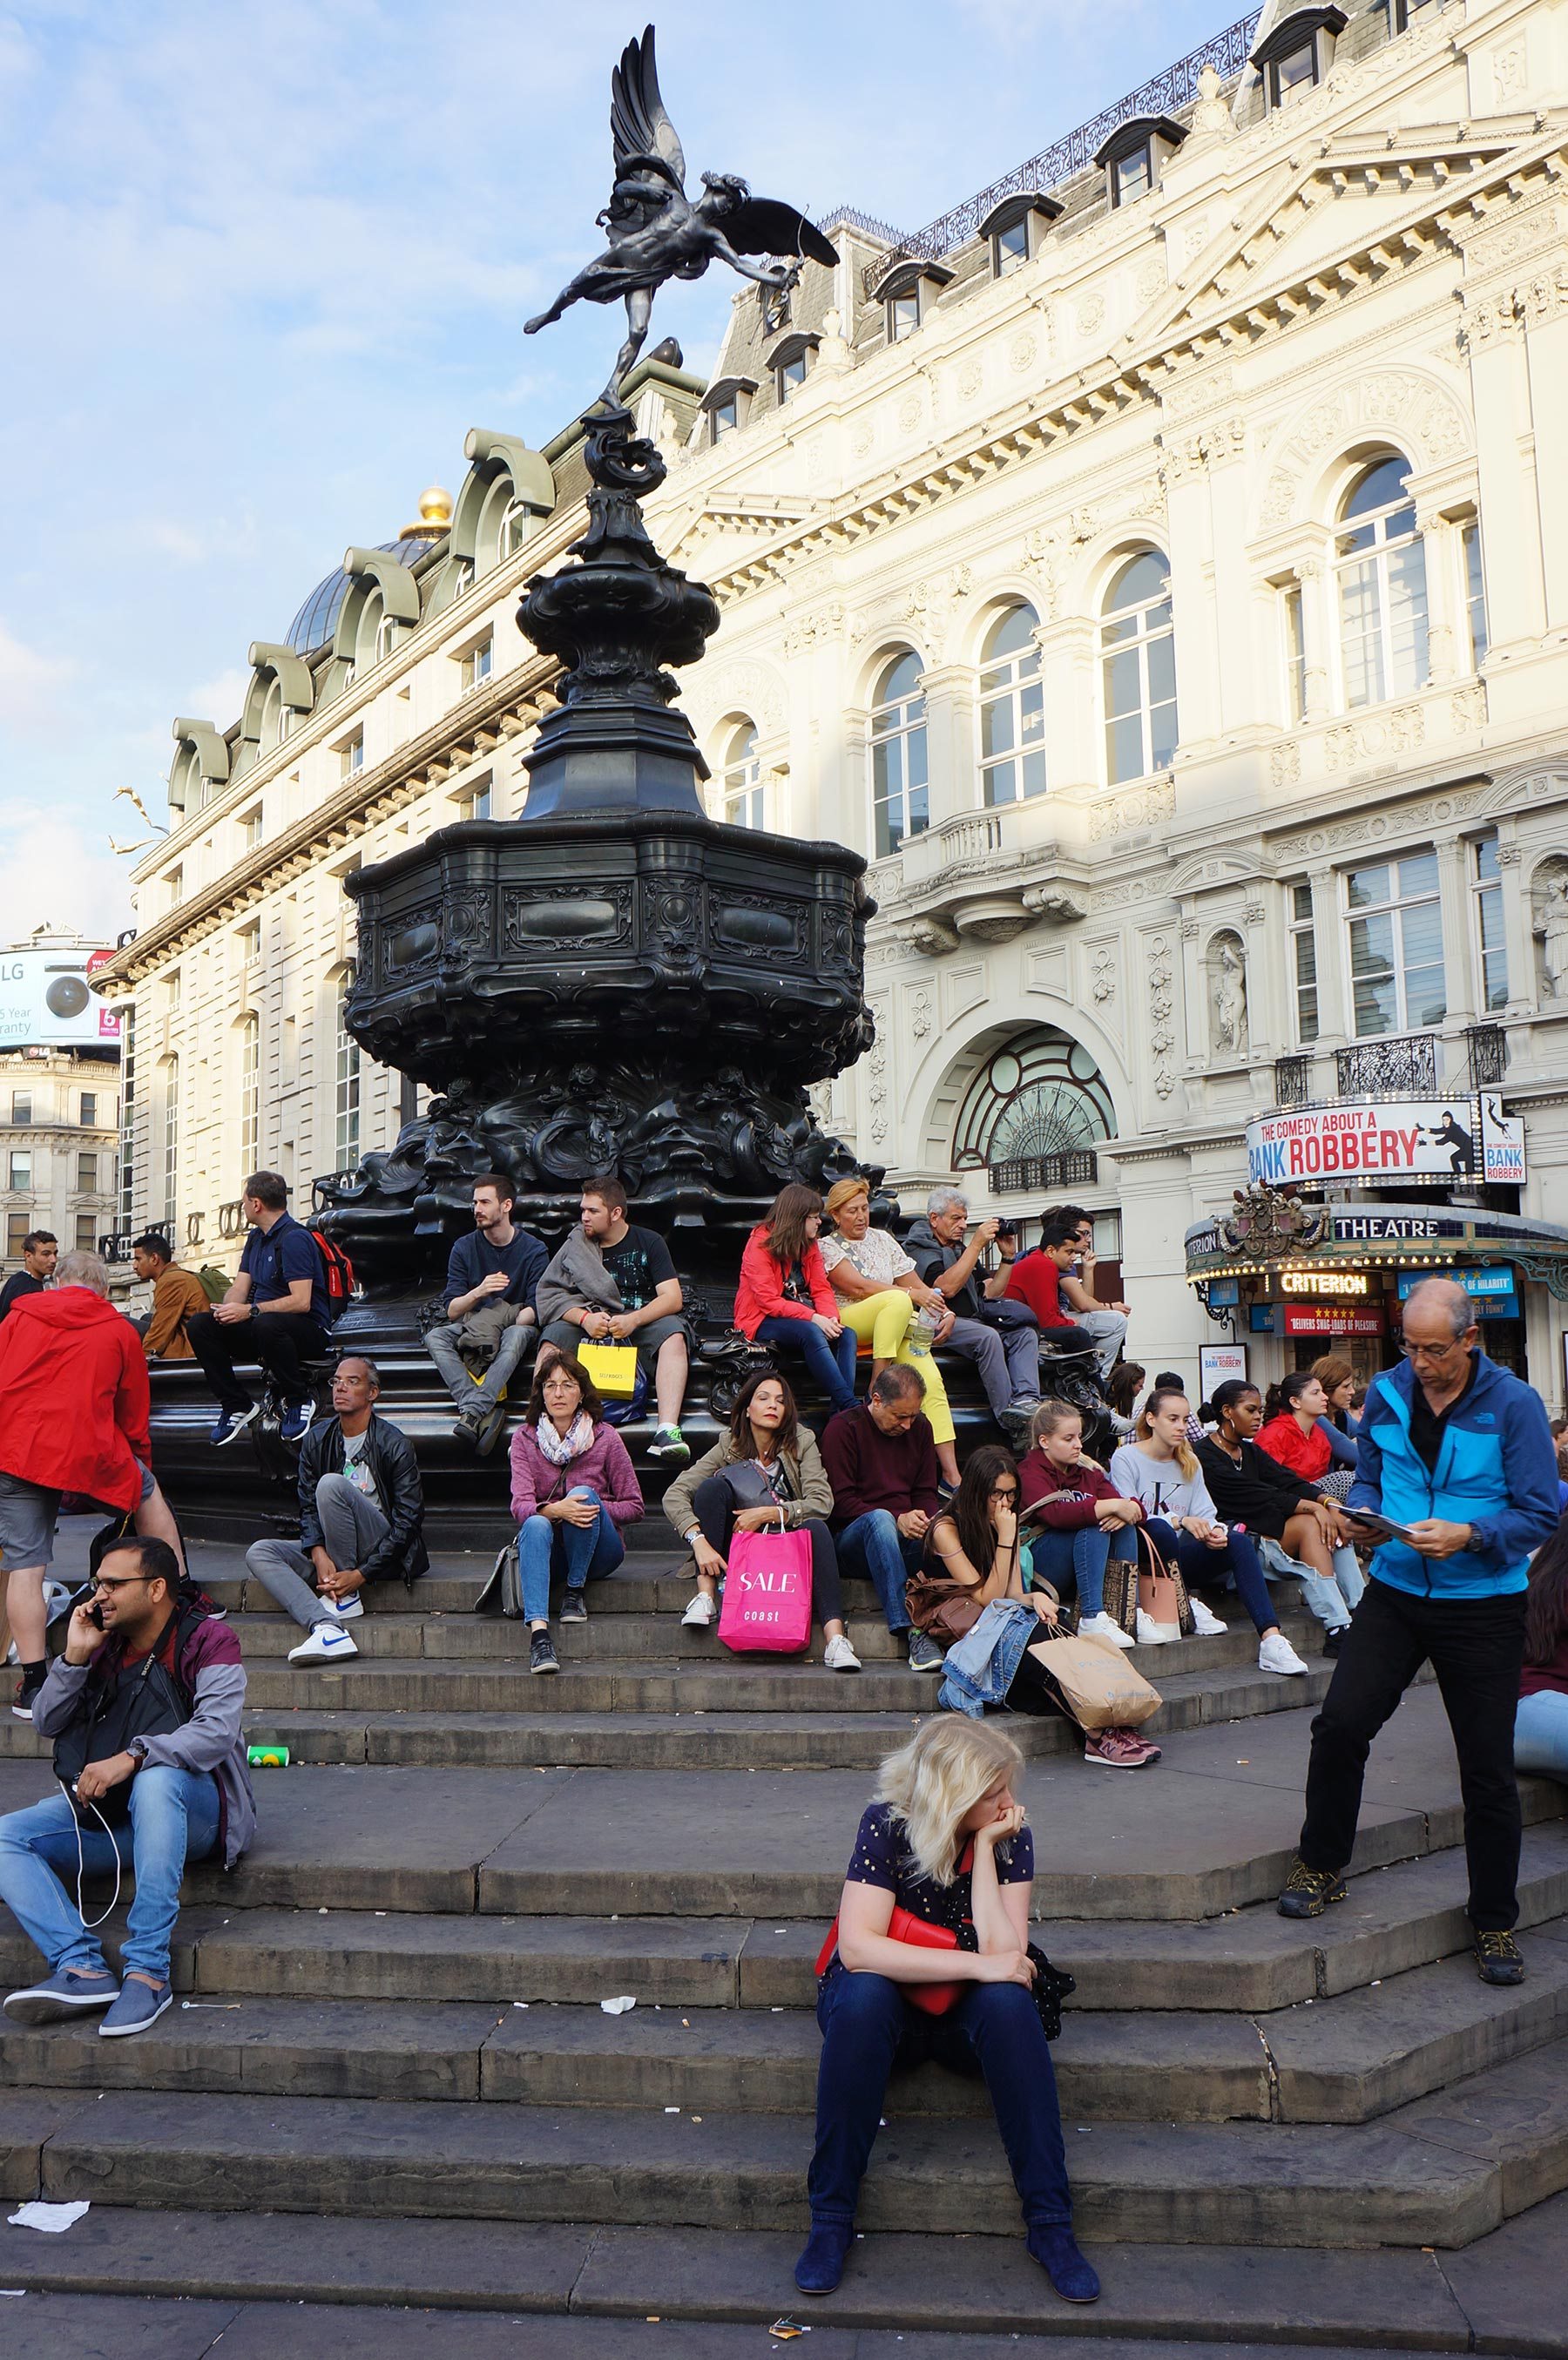 Picadilly circus à Londres